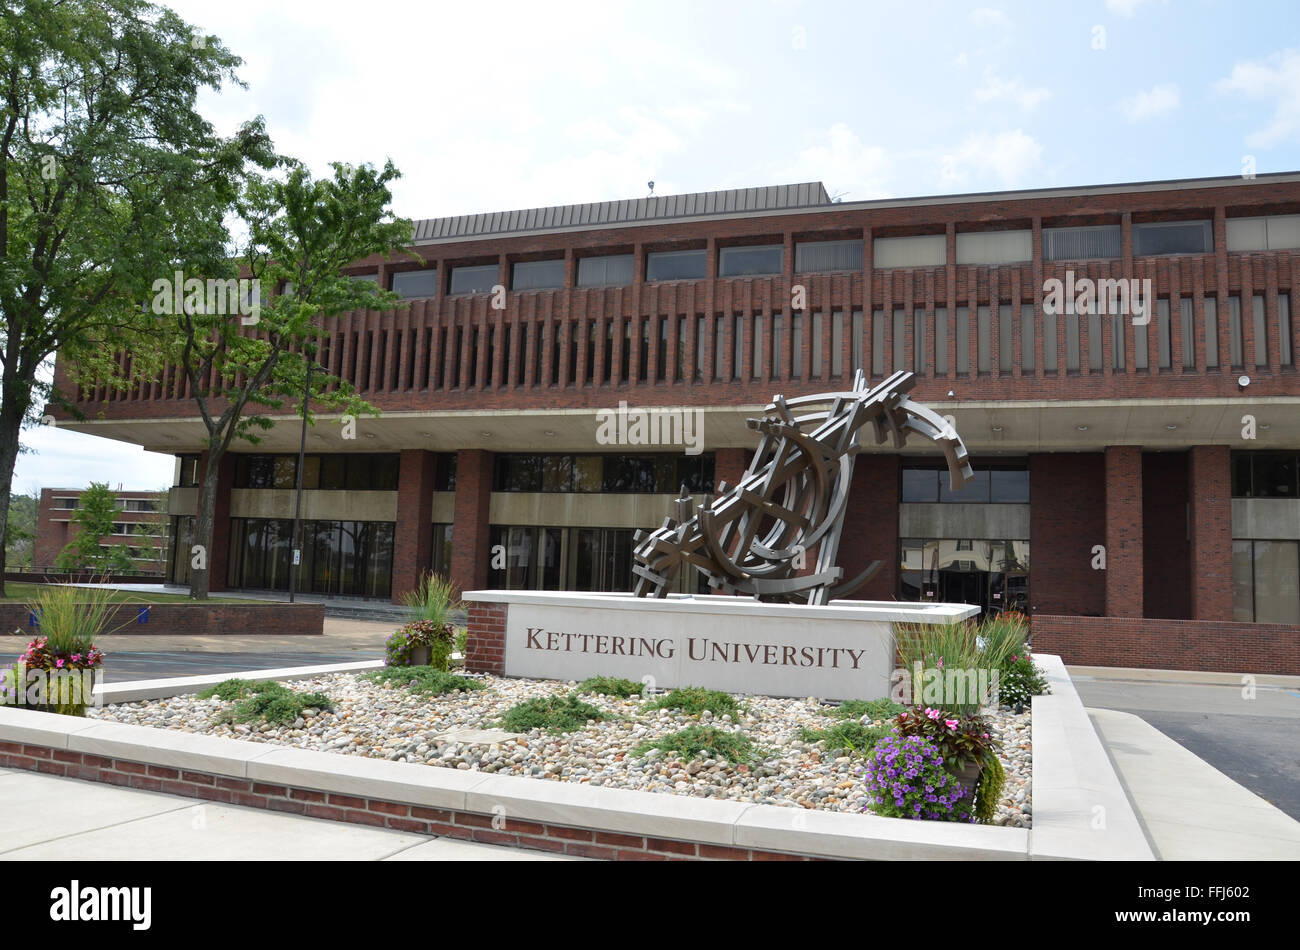 FLINT, MI - AUGUST 22: The Campus Center of Kettering University is shown here on August 22, 2015. - Stock Image